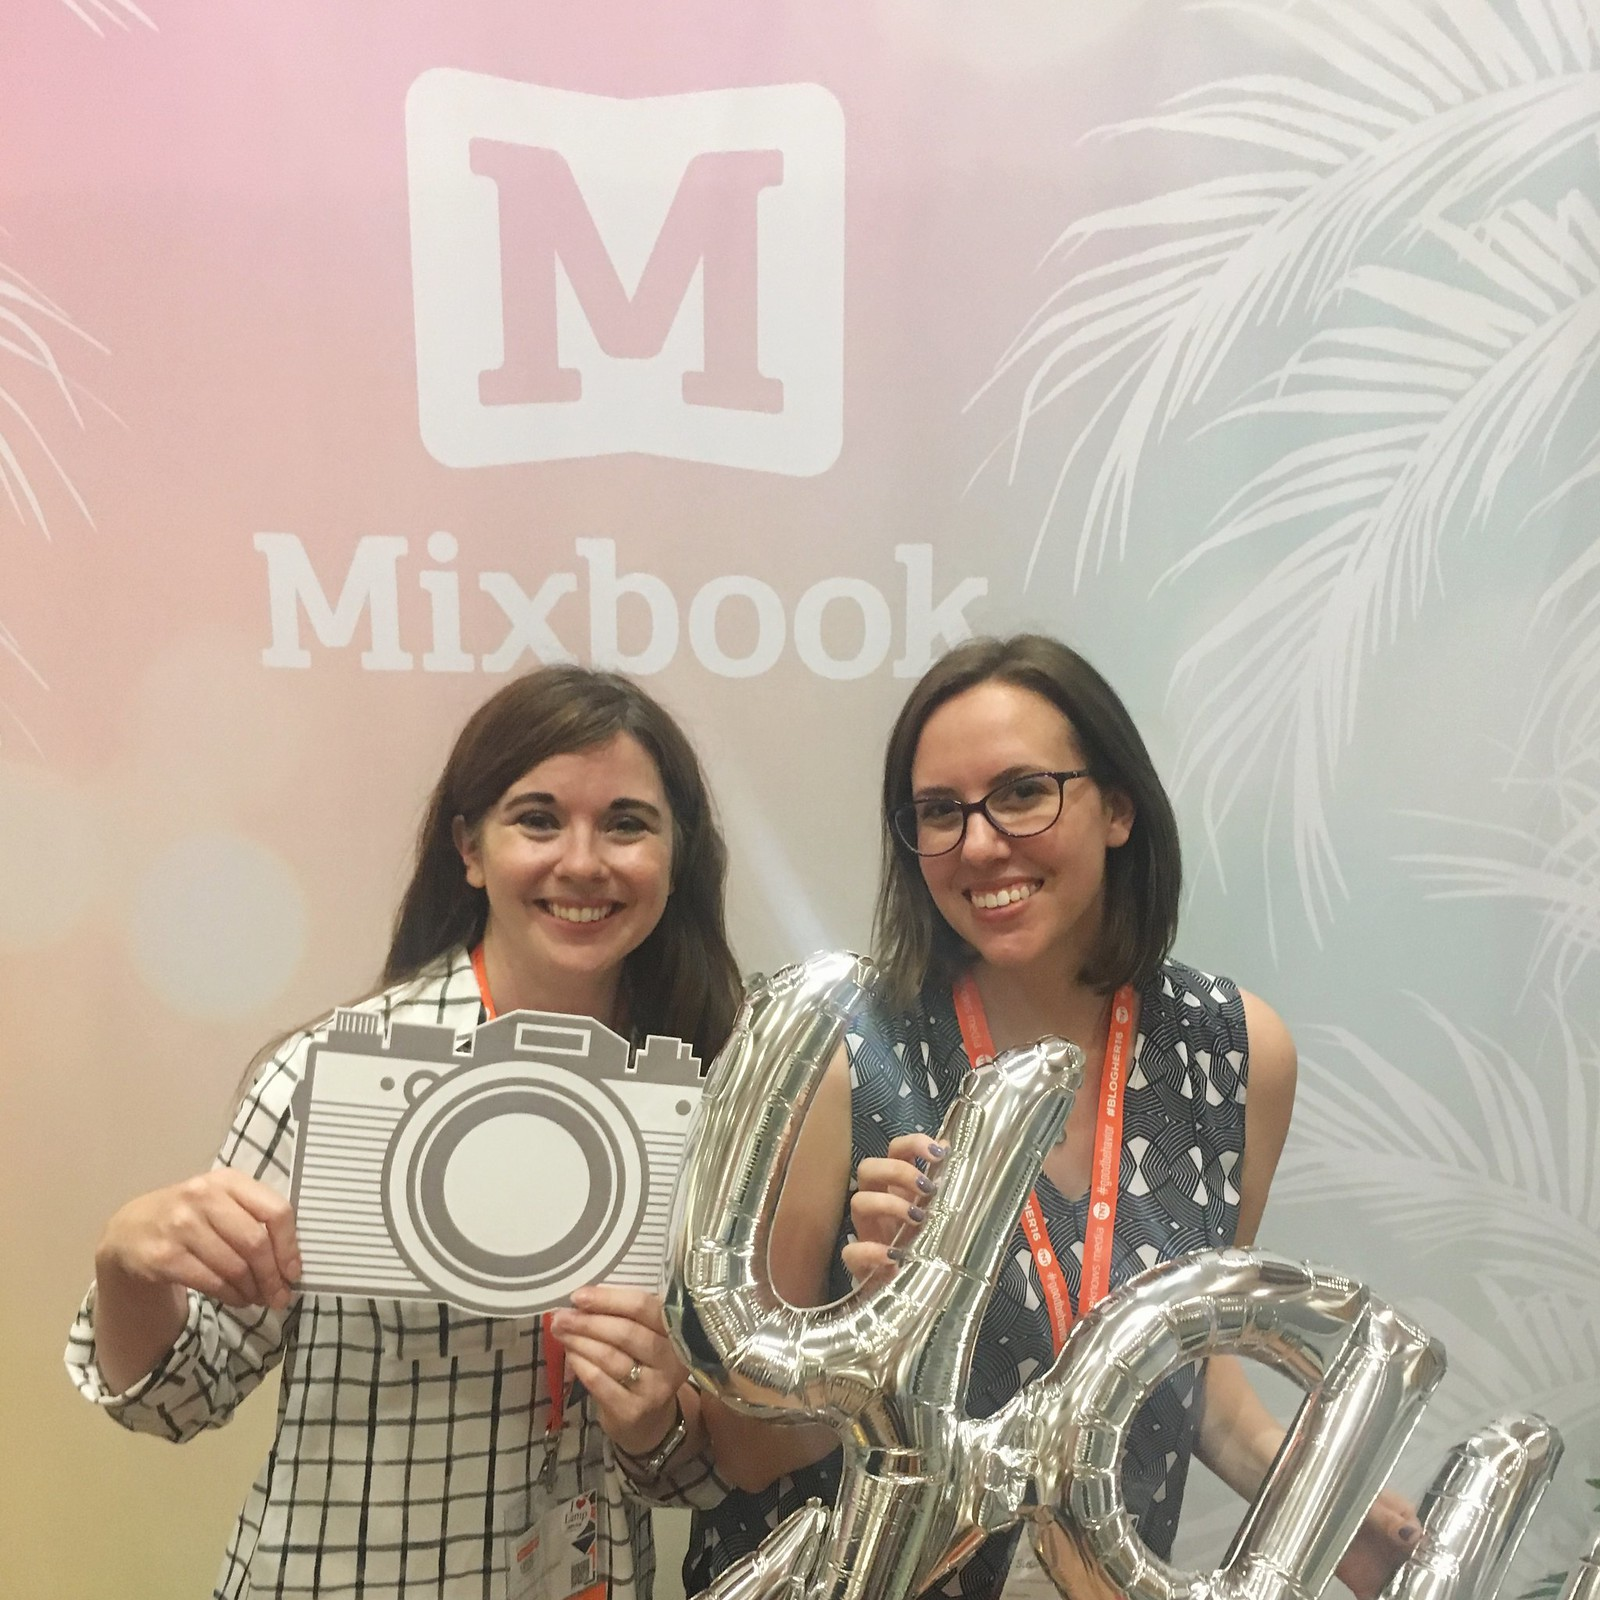 Mixbook both at BlogHer